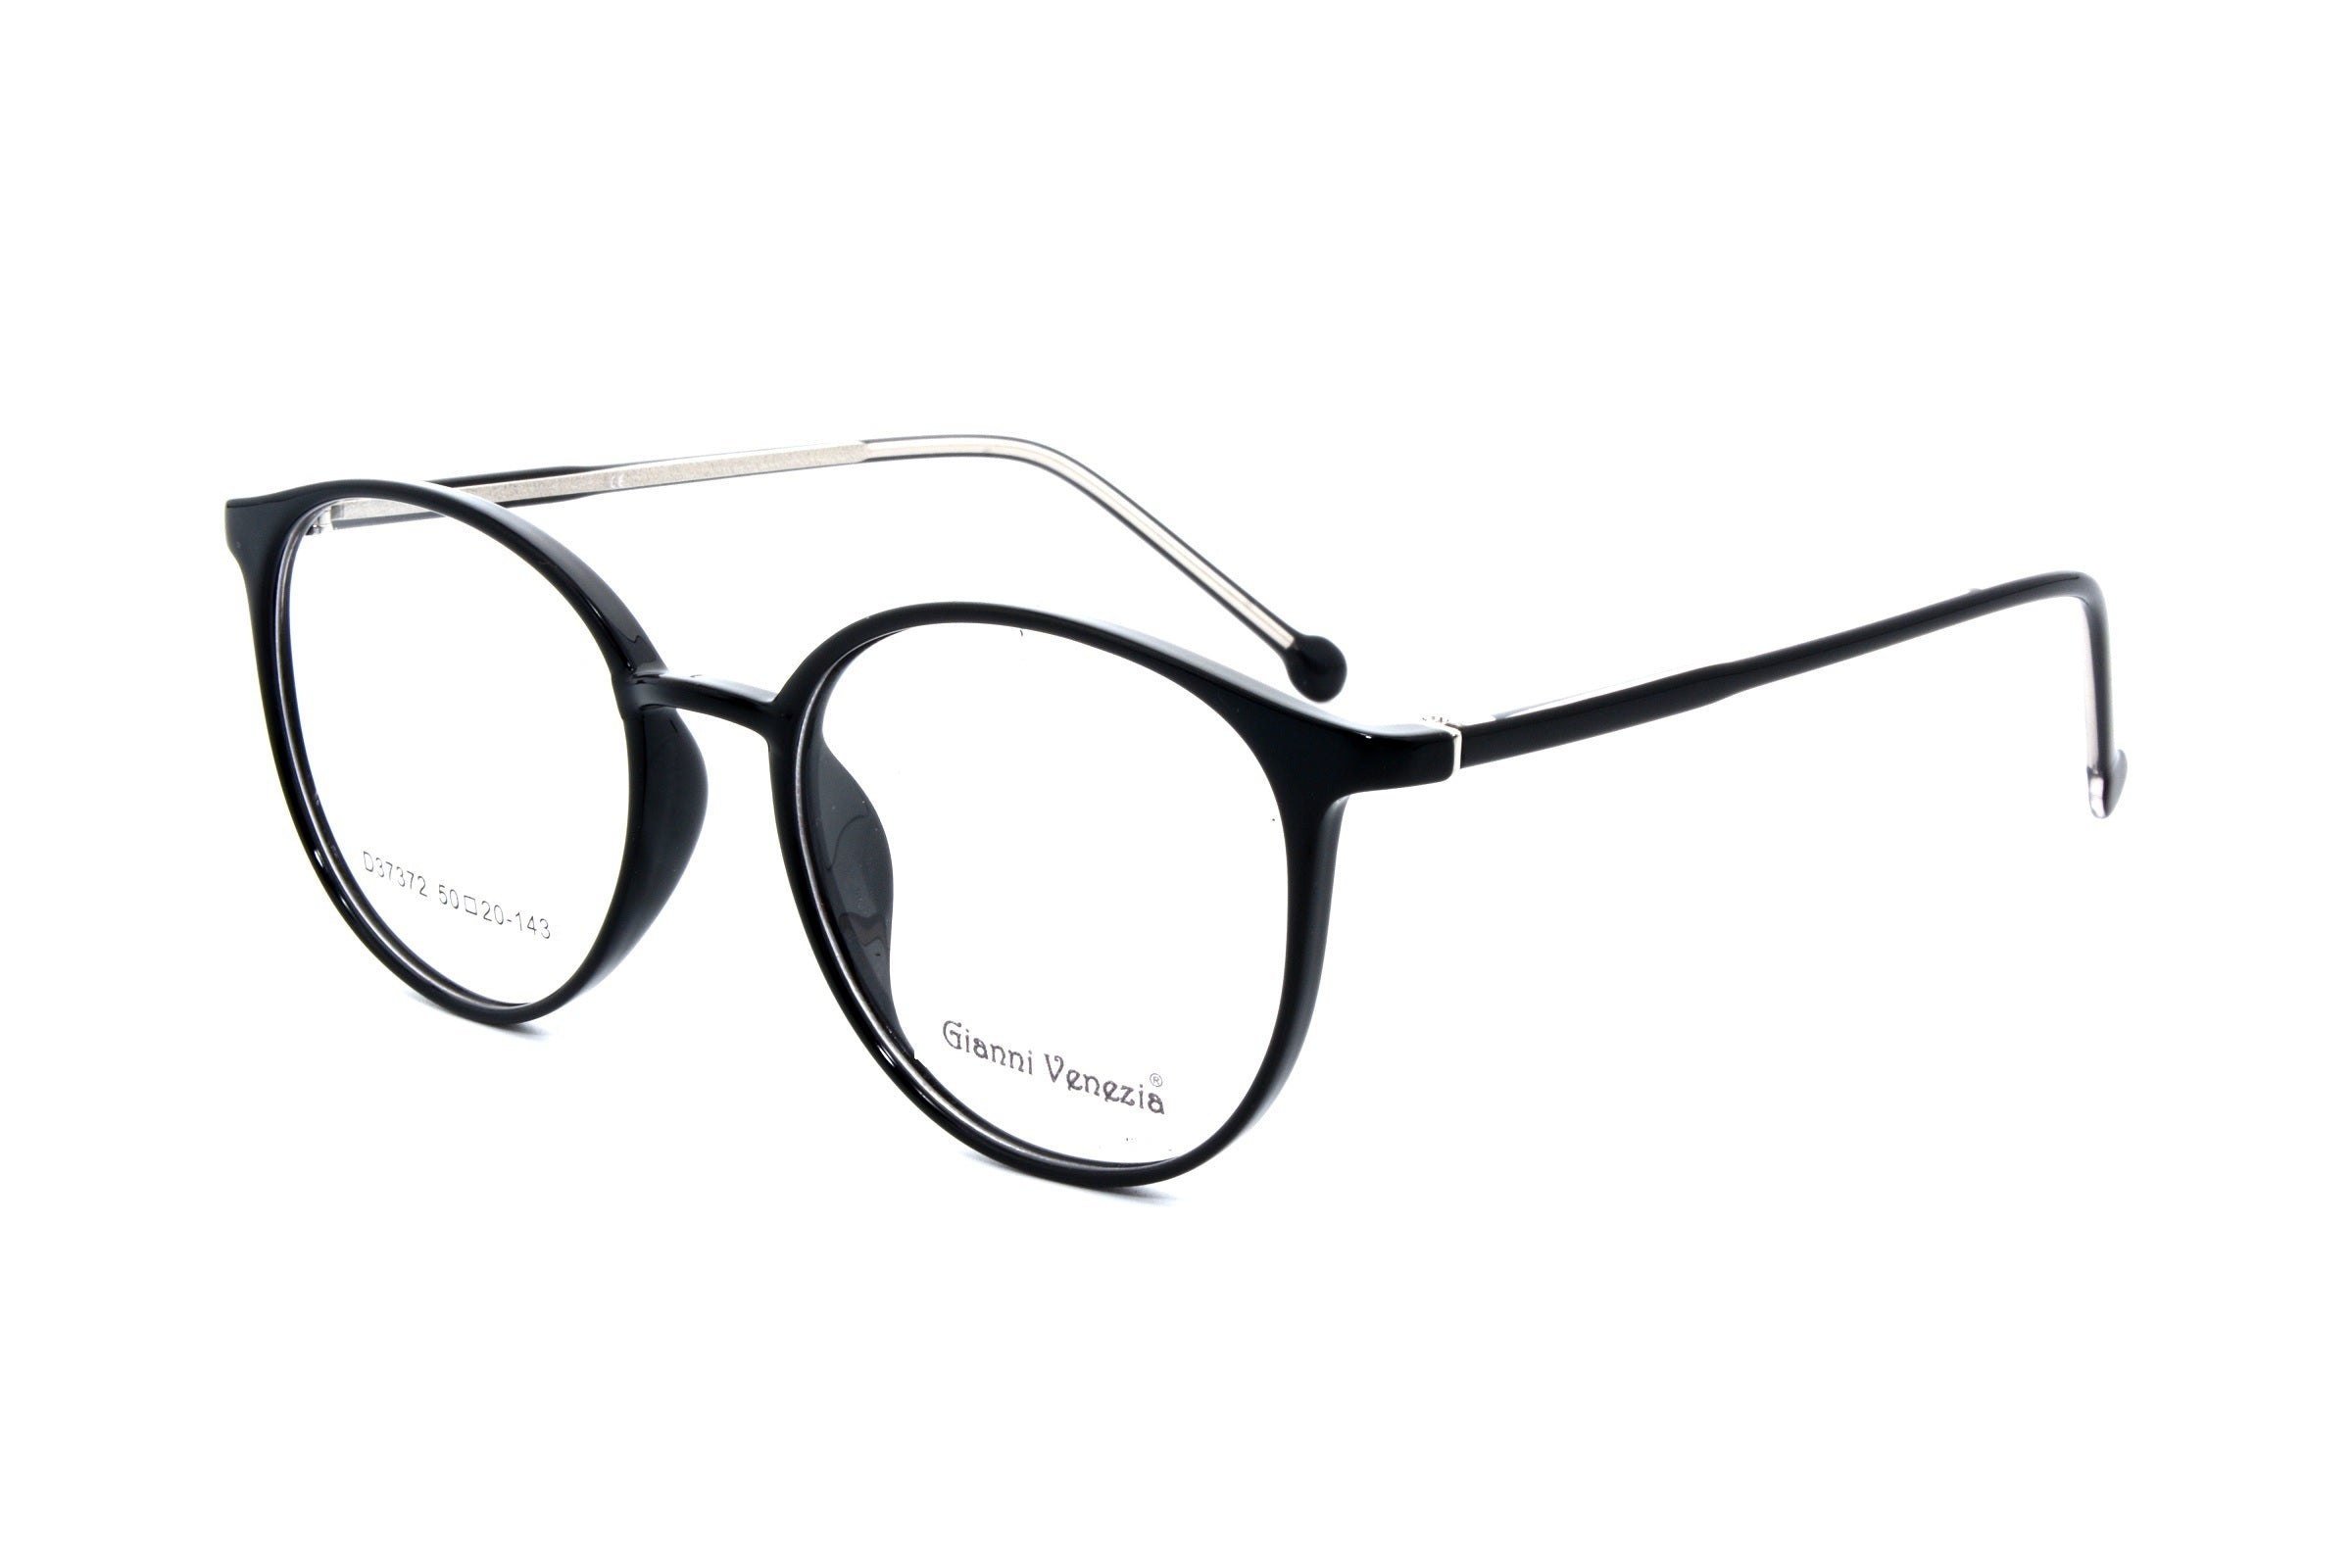 Gianni Vennezia eyewear 37372, C1 - Optics Trading